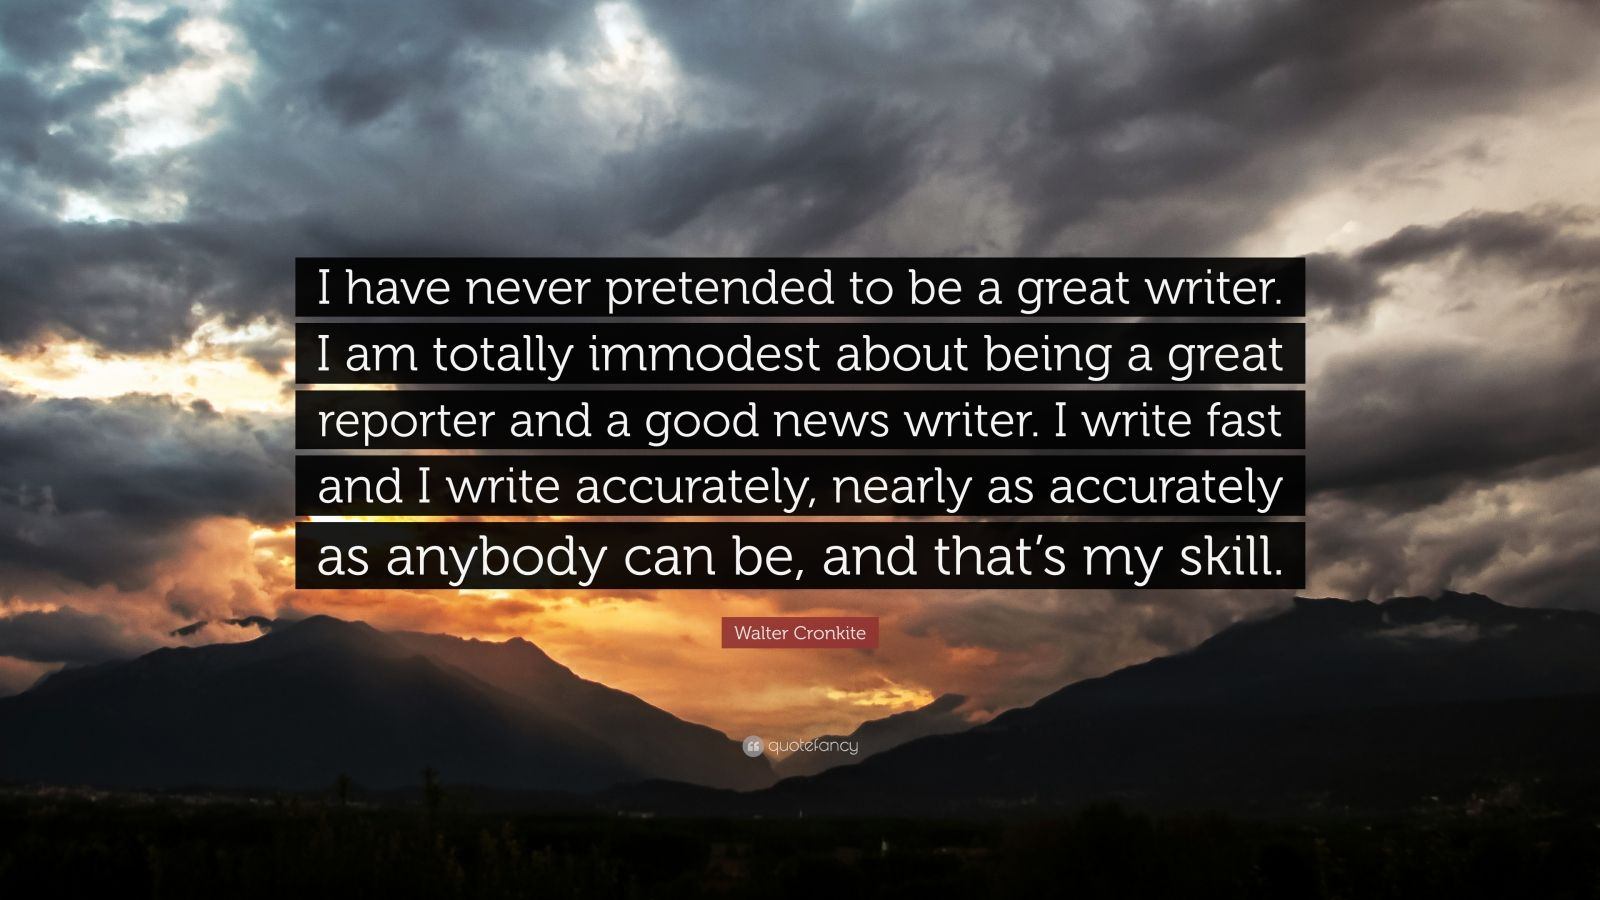 """Walter Cronkite Quote: """"I have never pretended to be a great writer. I am totally immodest about being a great reporter and a good news writer. I write fast and I write accurately, nearly as accurately as anybody can be, and that's my skill."""""""